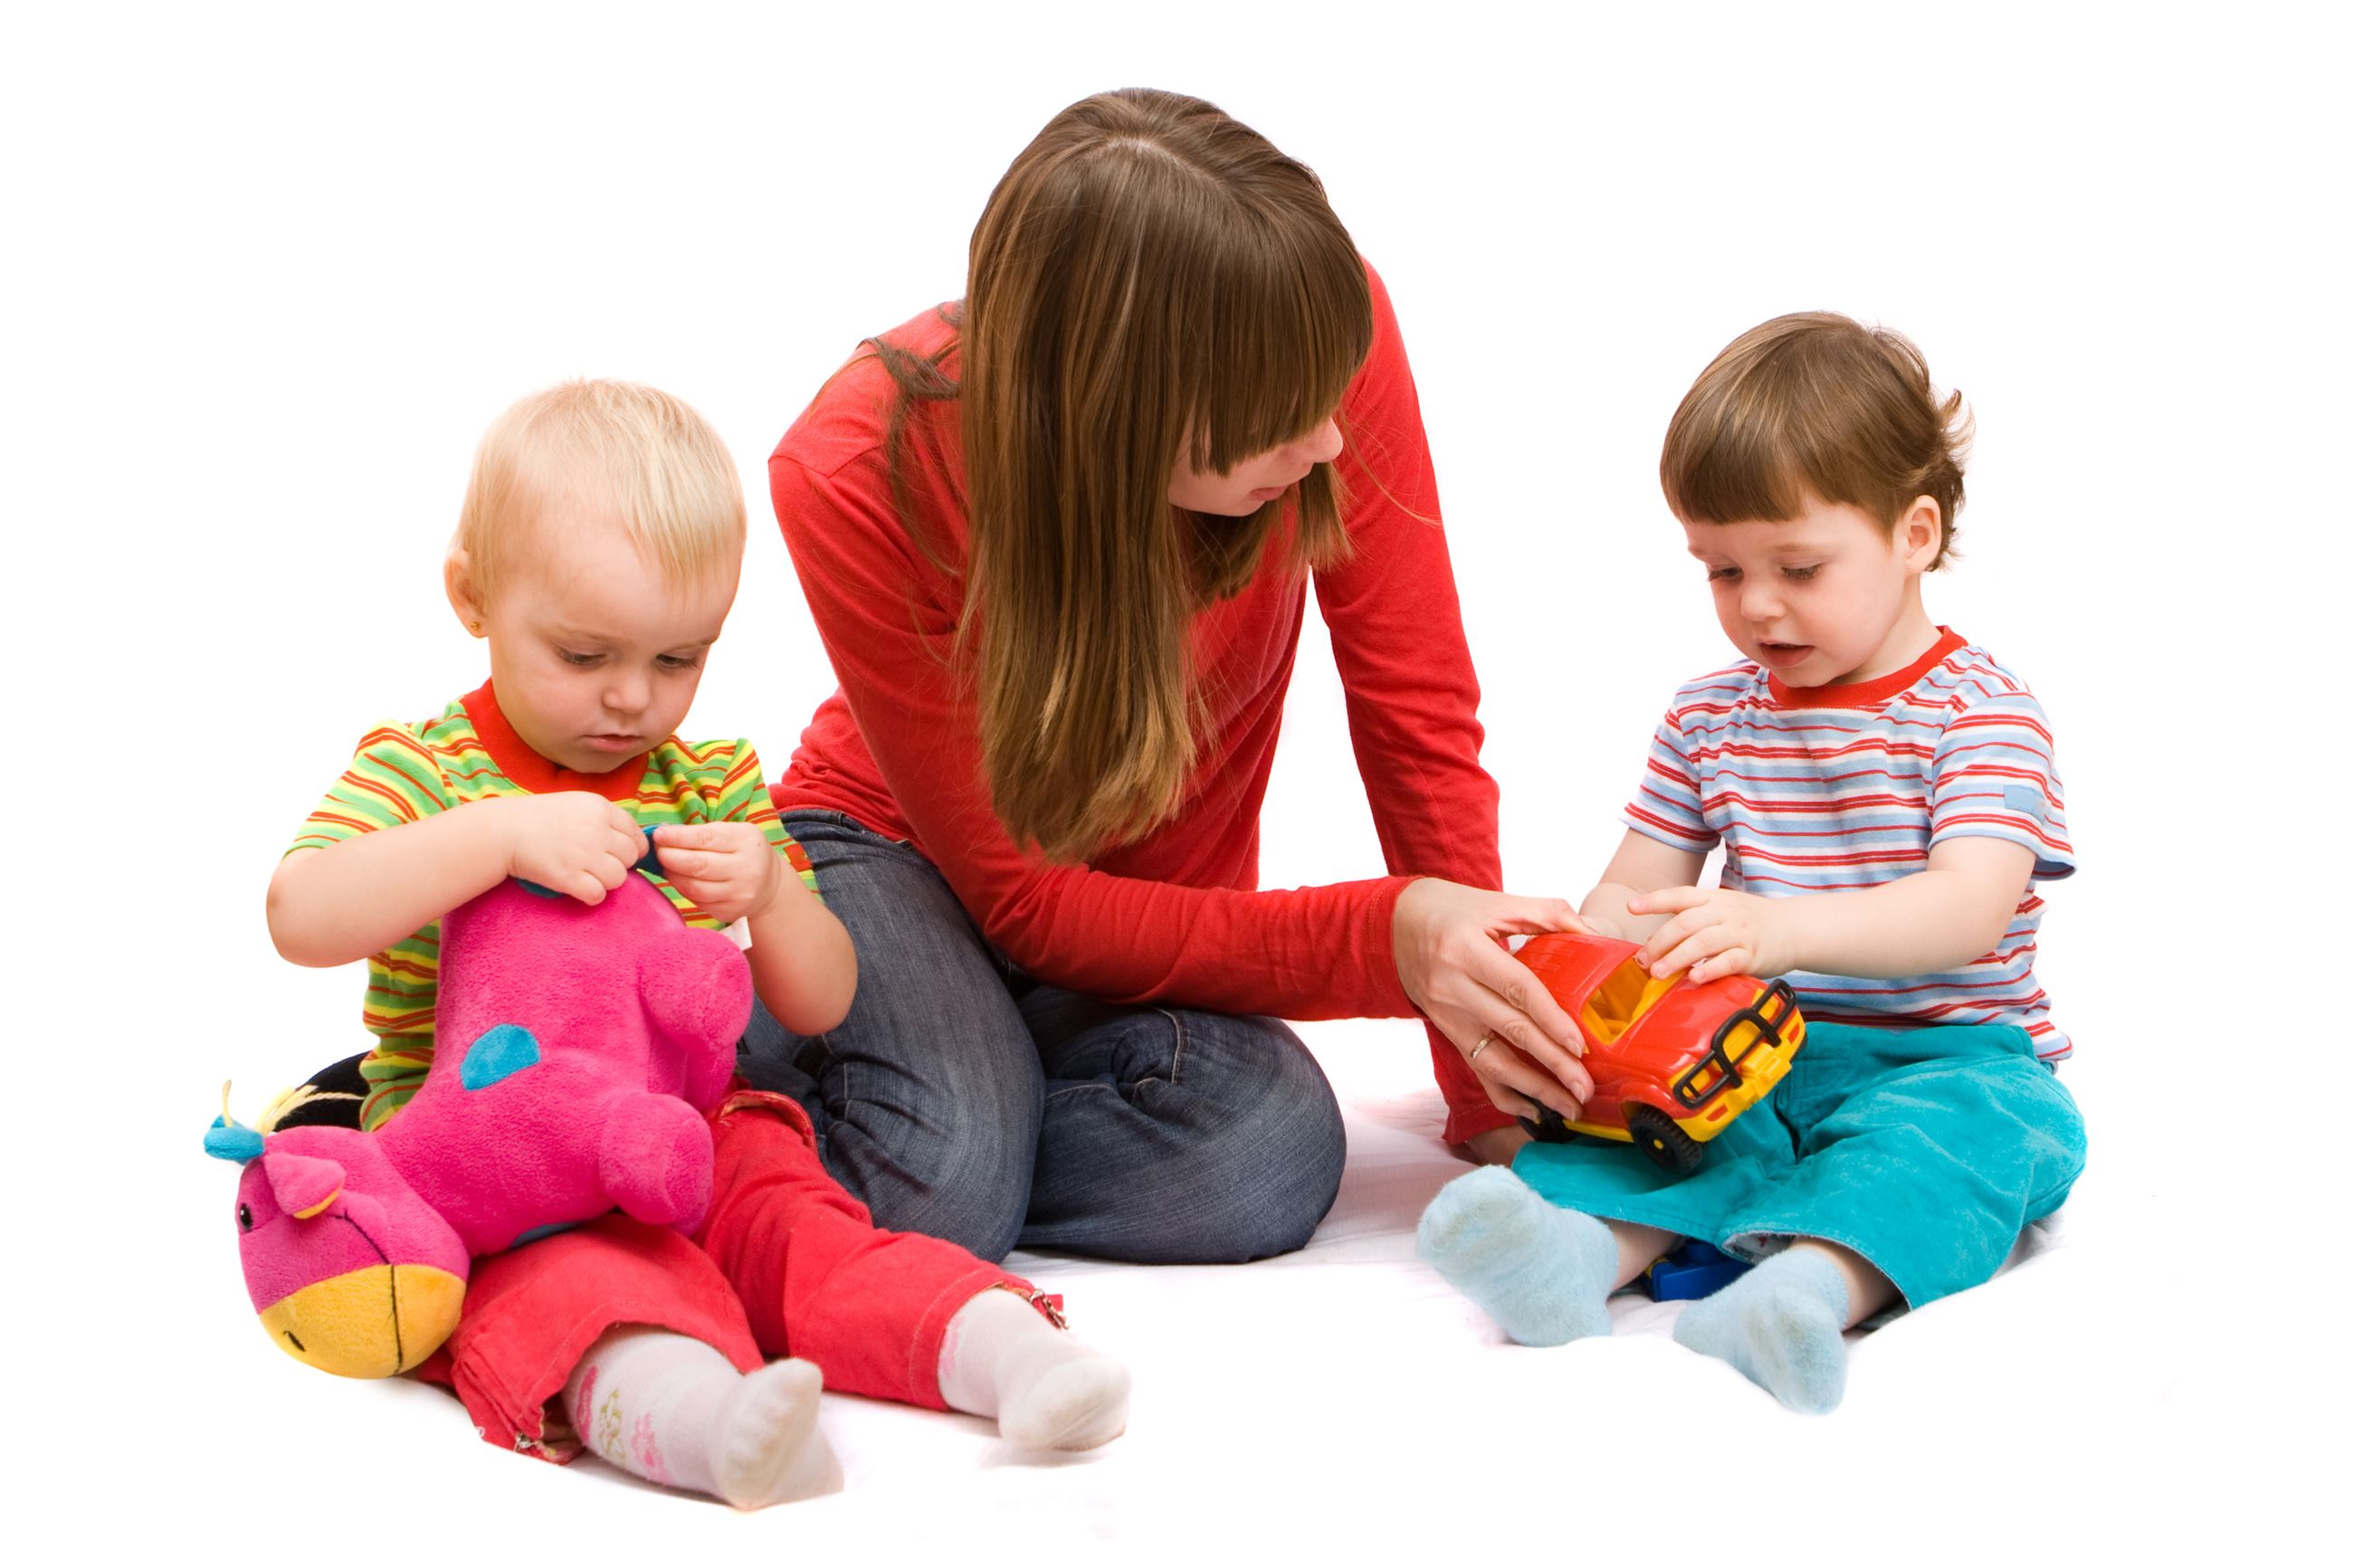 image of a woman playing with two small children